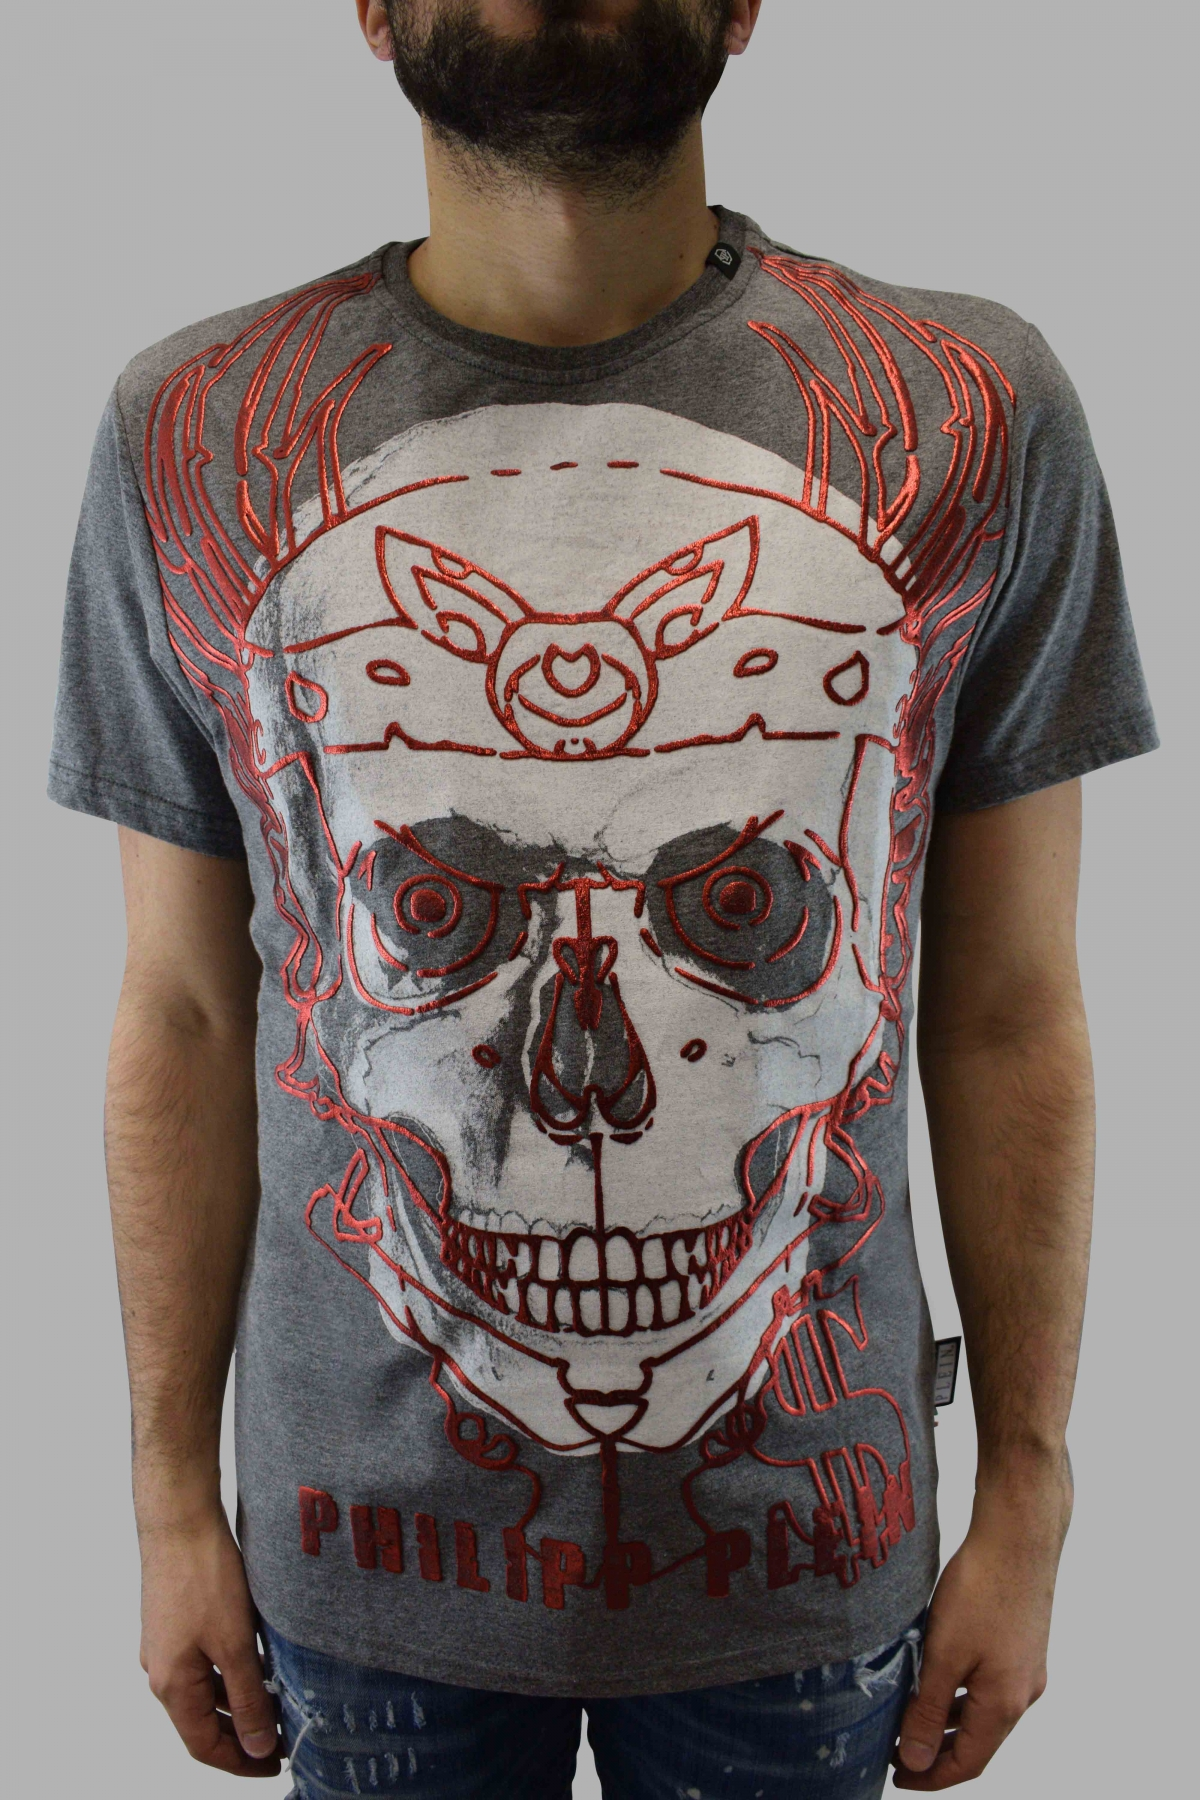 Philipp Plein grey short sleeves t-shirt with white skull and red glittered drawings